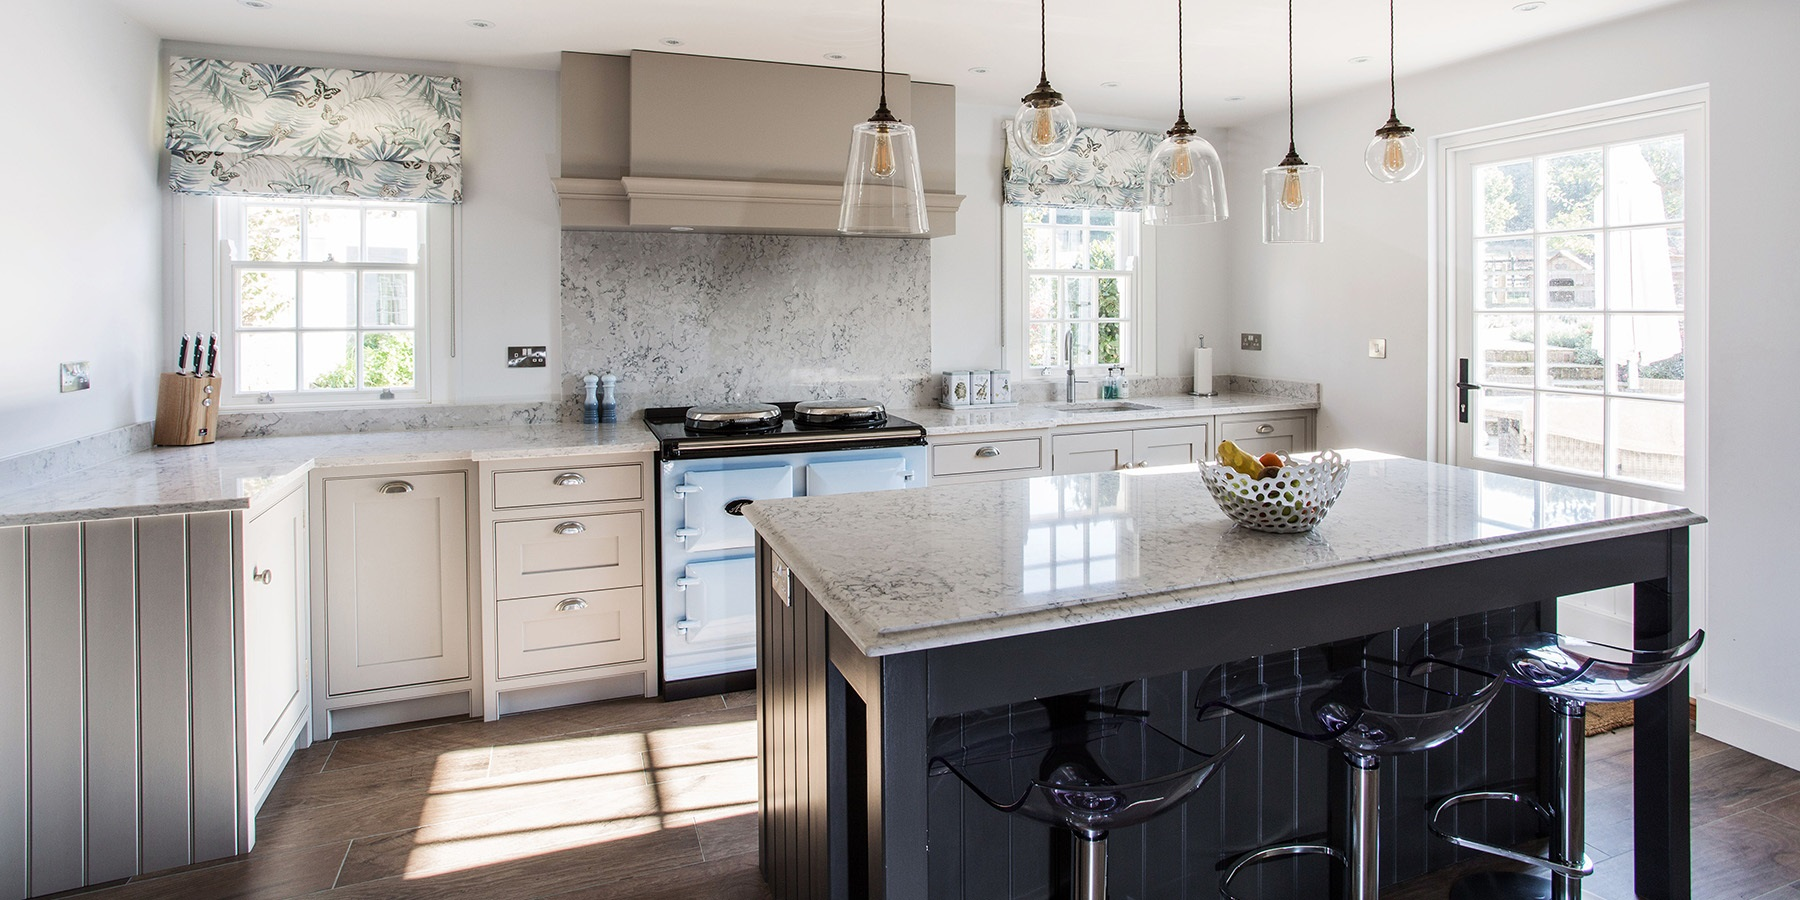 Burlanes Interiors - Burlanes offer a bespoke design service for kitchens and all interior living spaces in Kent, Essex, London and the South East.